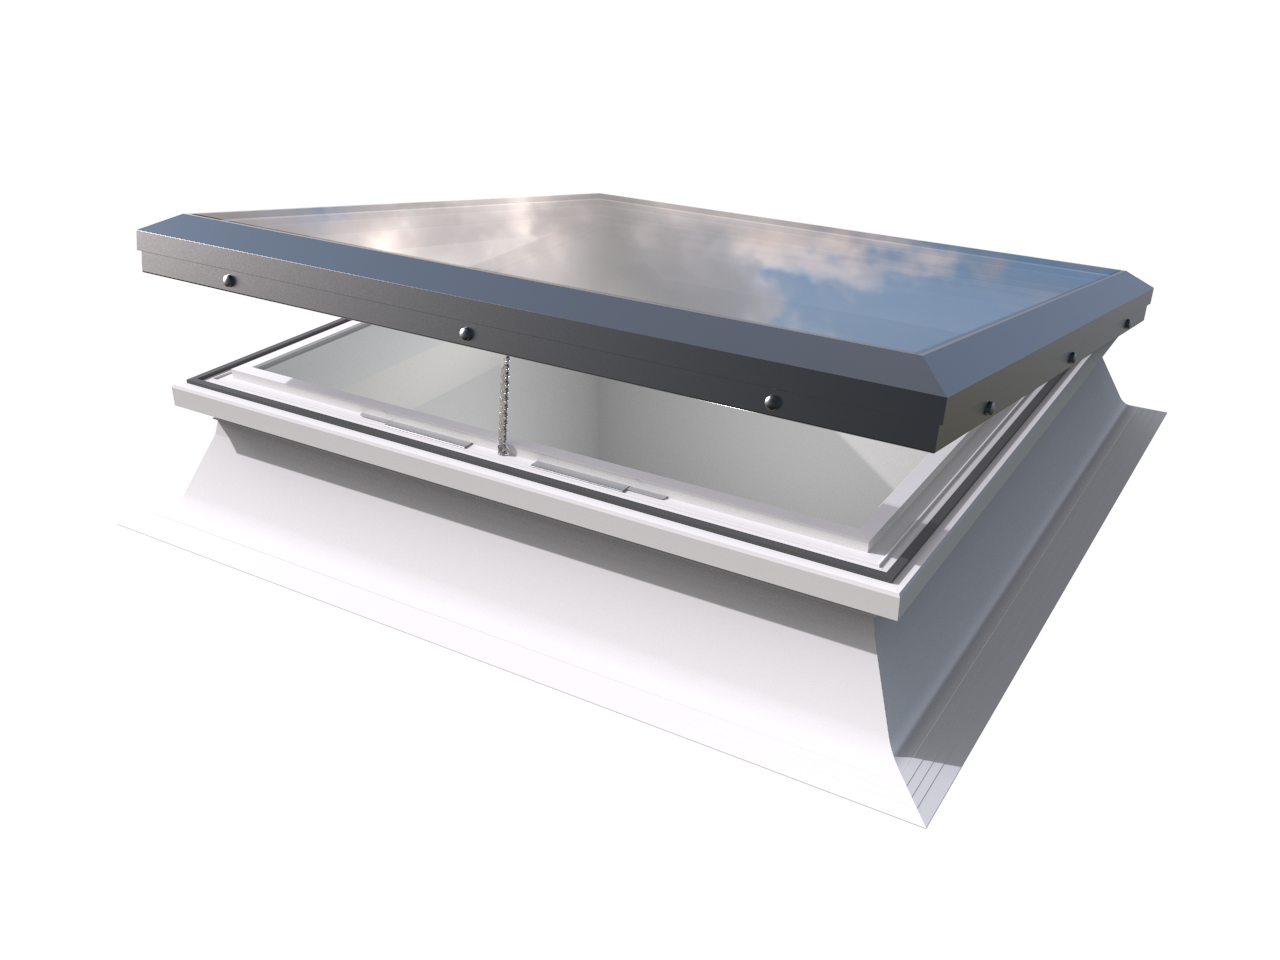 Mardome Glass Trade Rooflight Electric Hinge with PVC Kerb